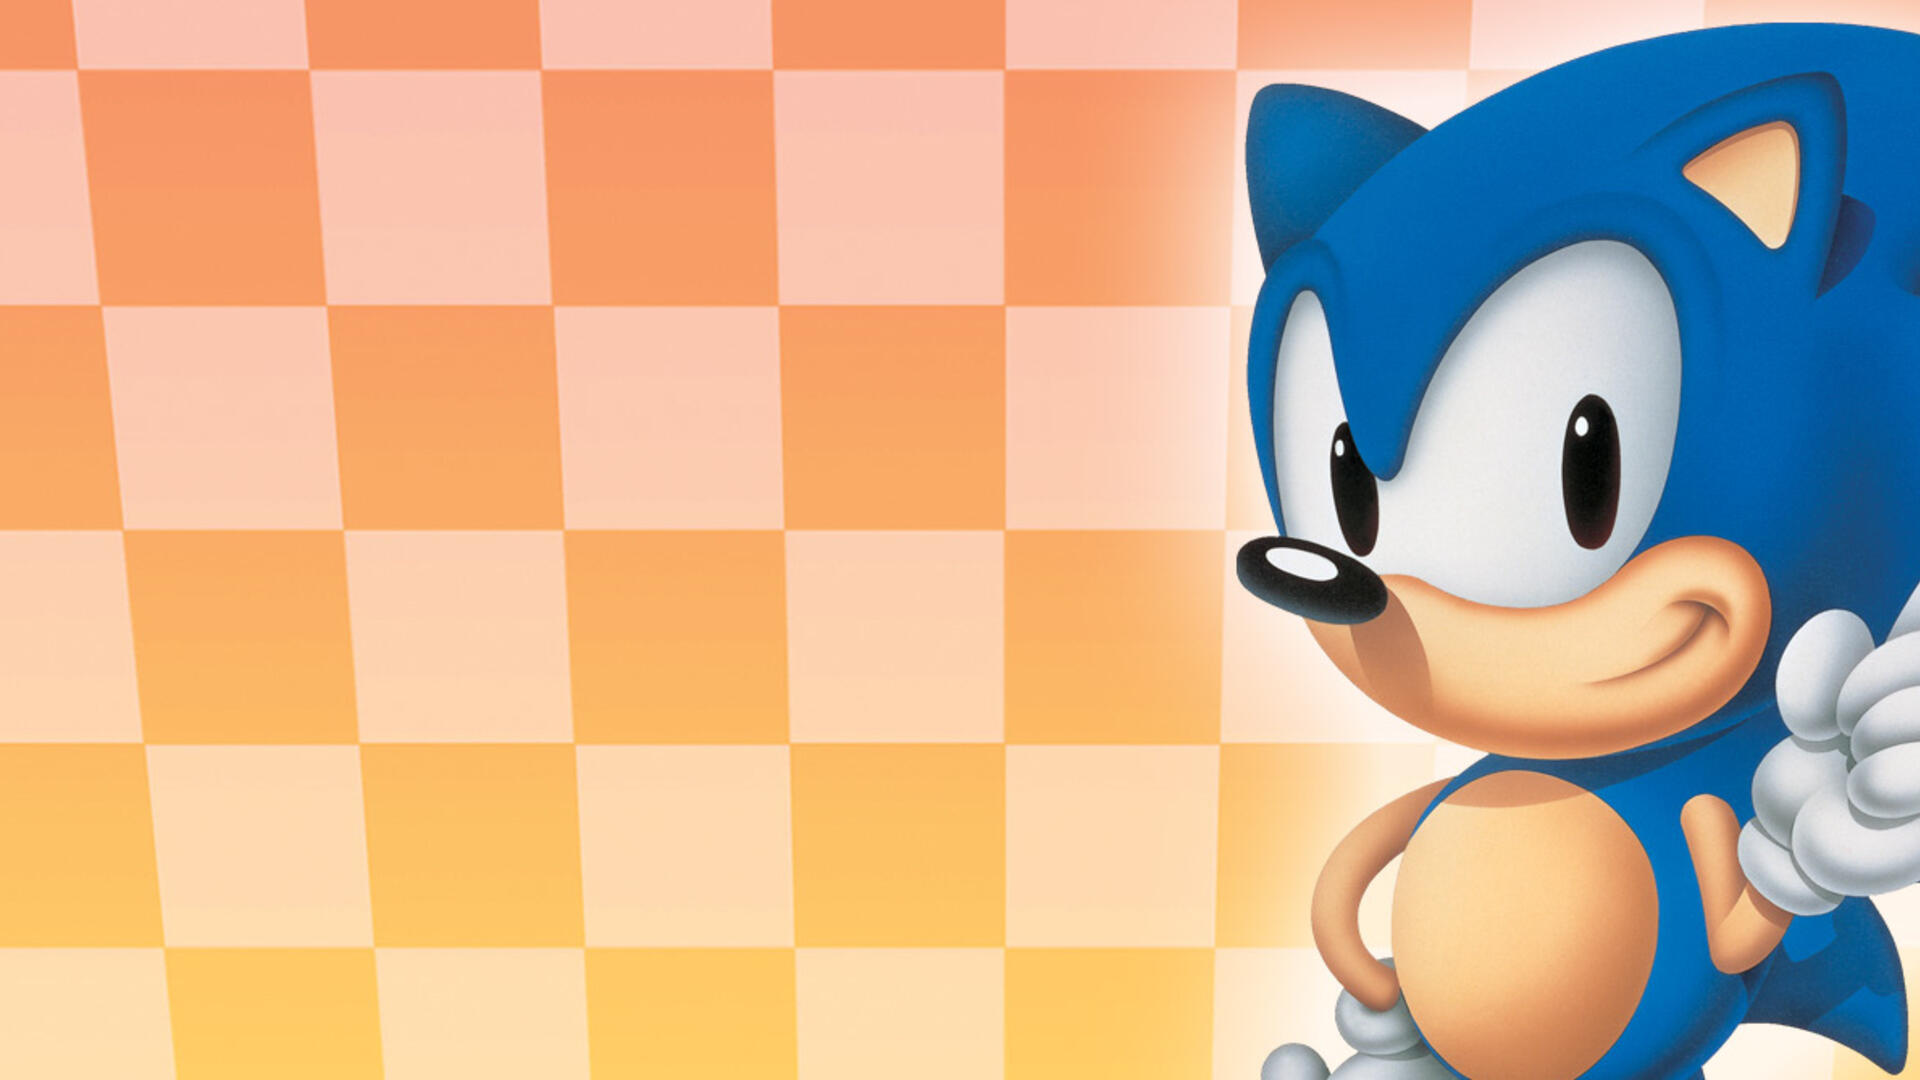 3D Sonic the Hedgehog Review: Giving a Sega Classic the Reverence it Deserves